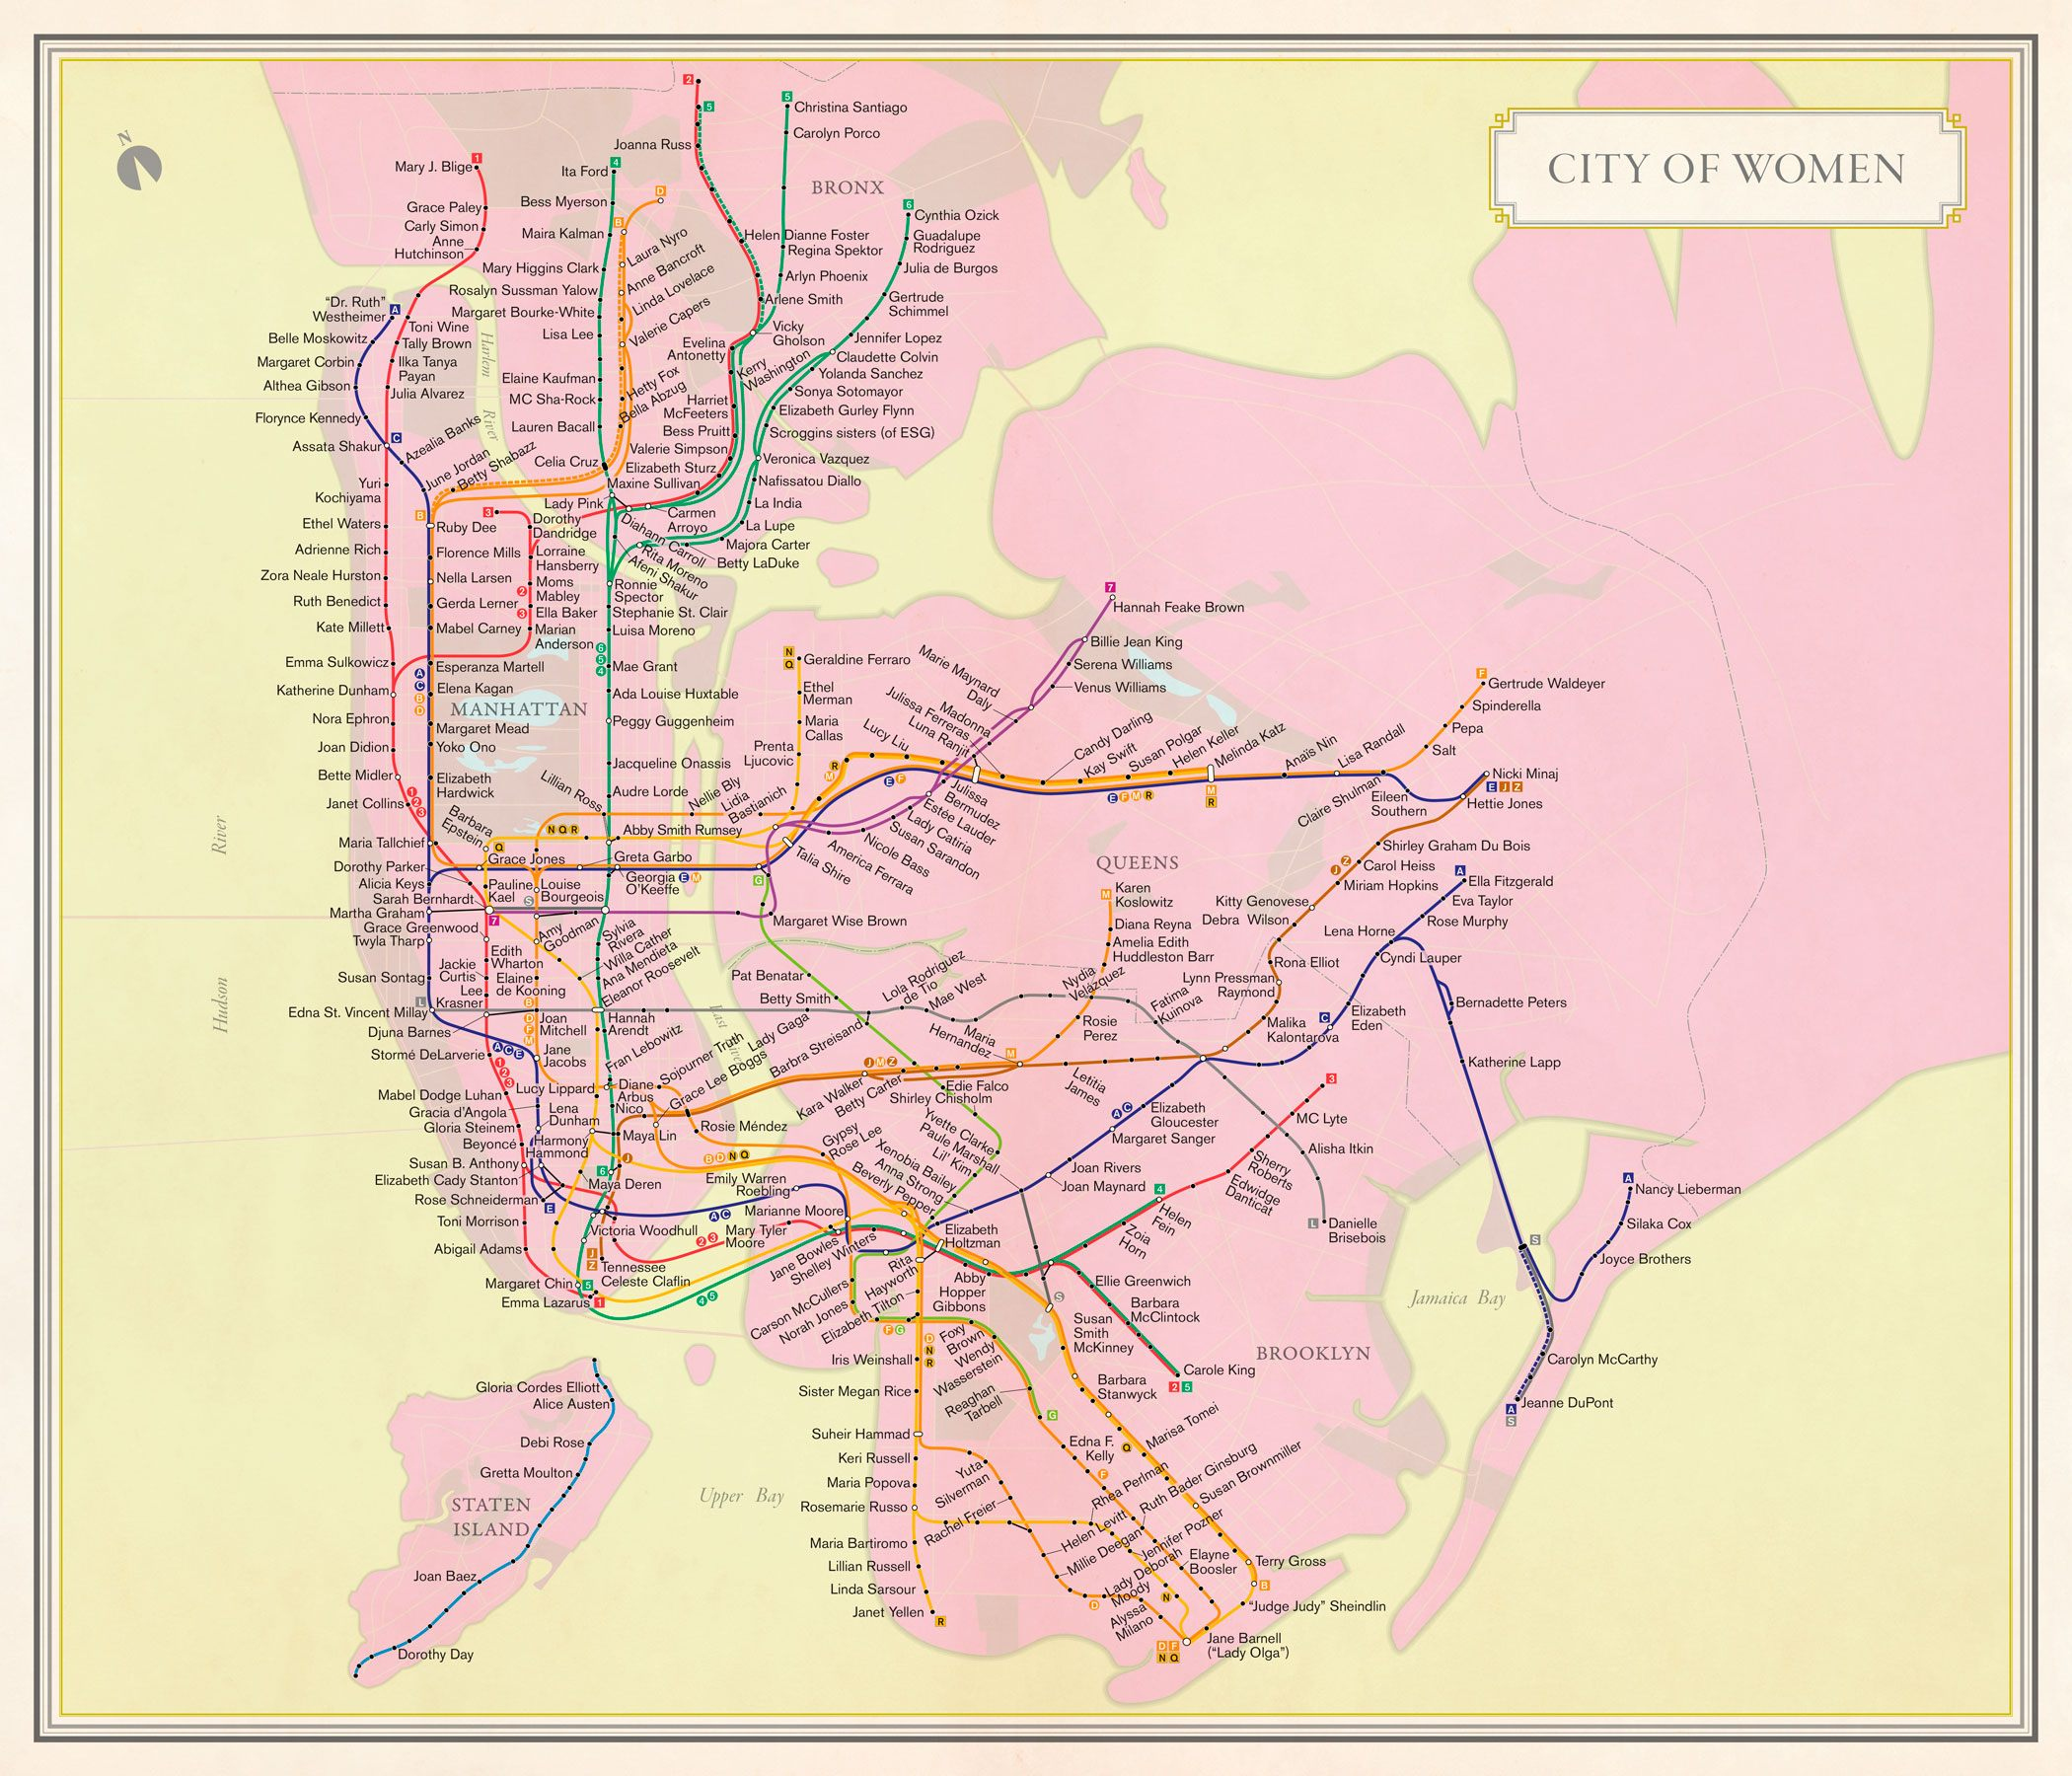 Subway Map To Rockefeller.City Of Women Turns The Subway Map Into An Homage To The City S